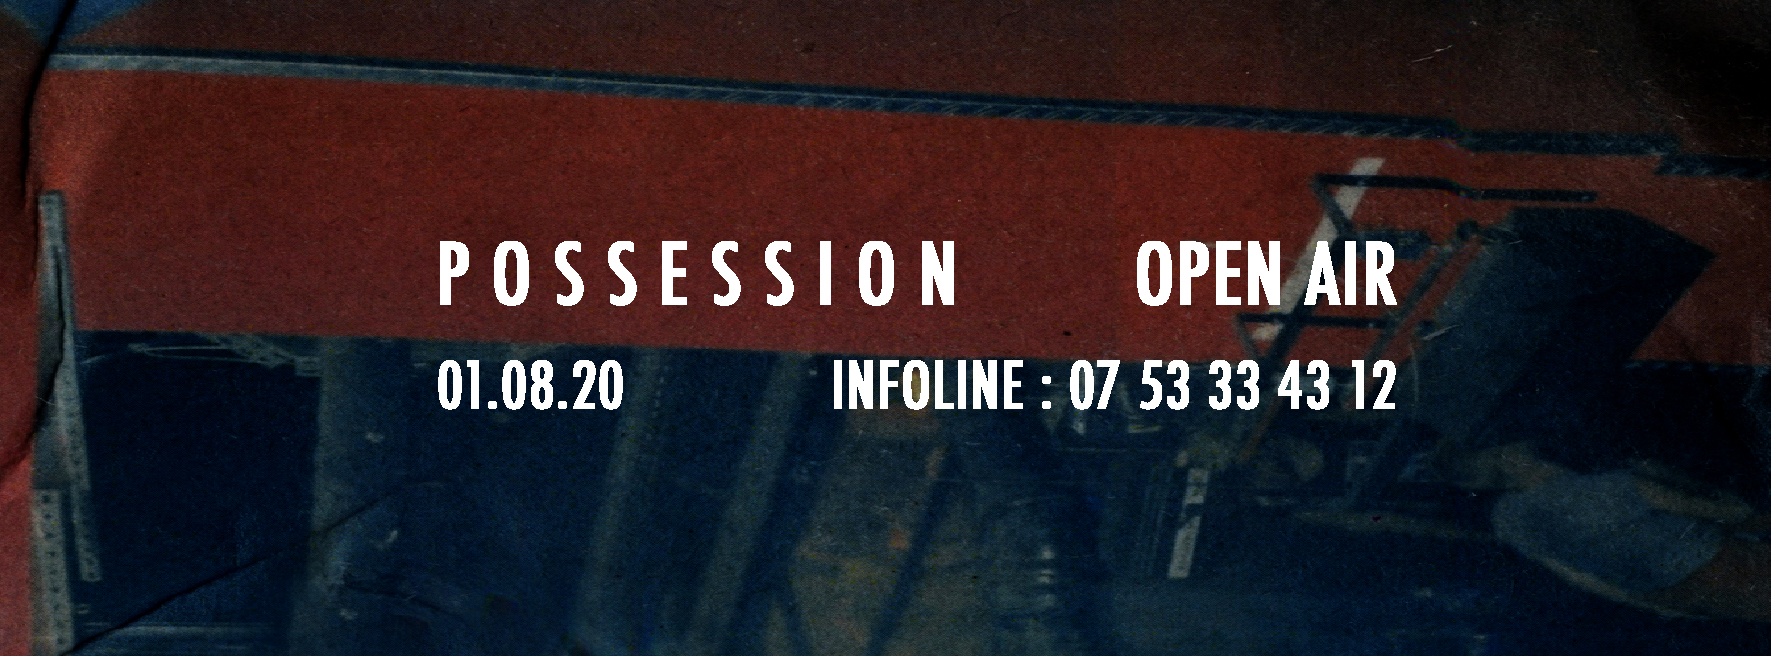 Possession Open Air